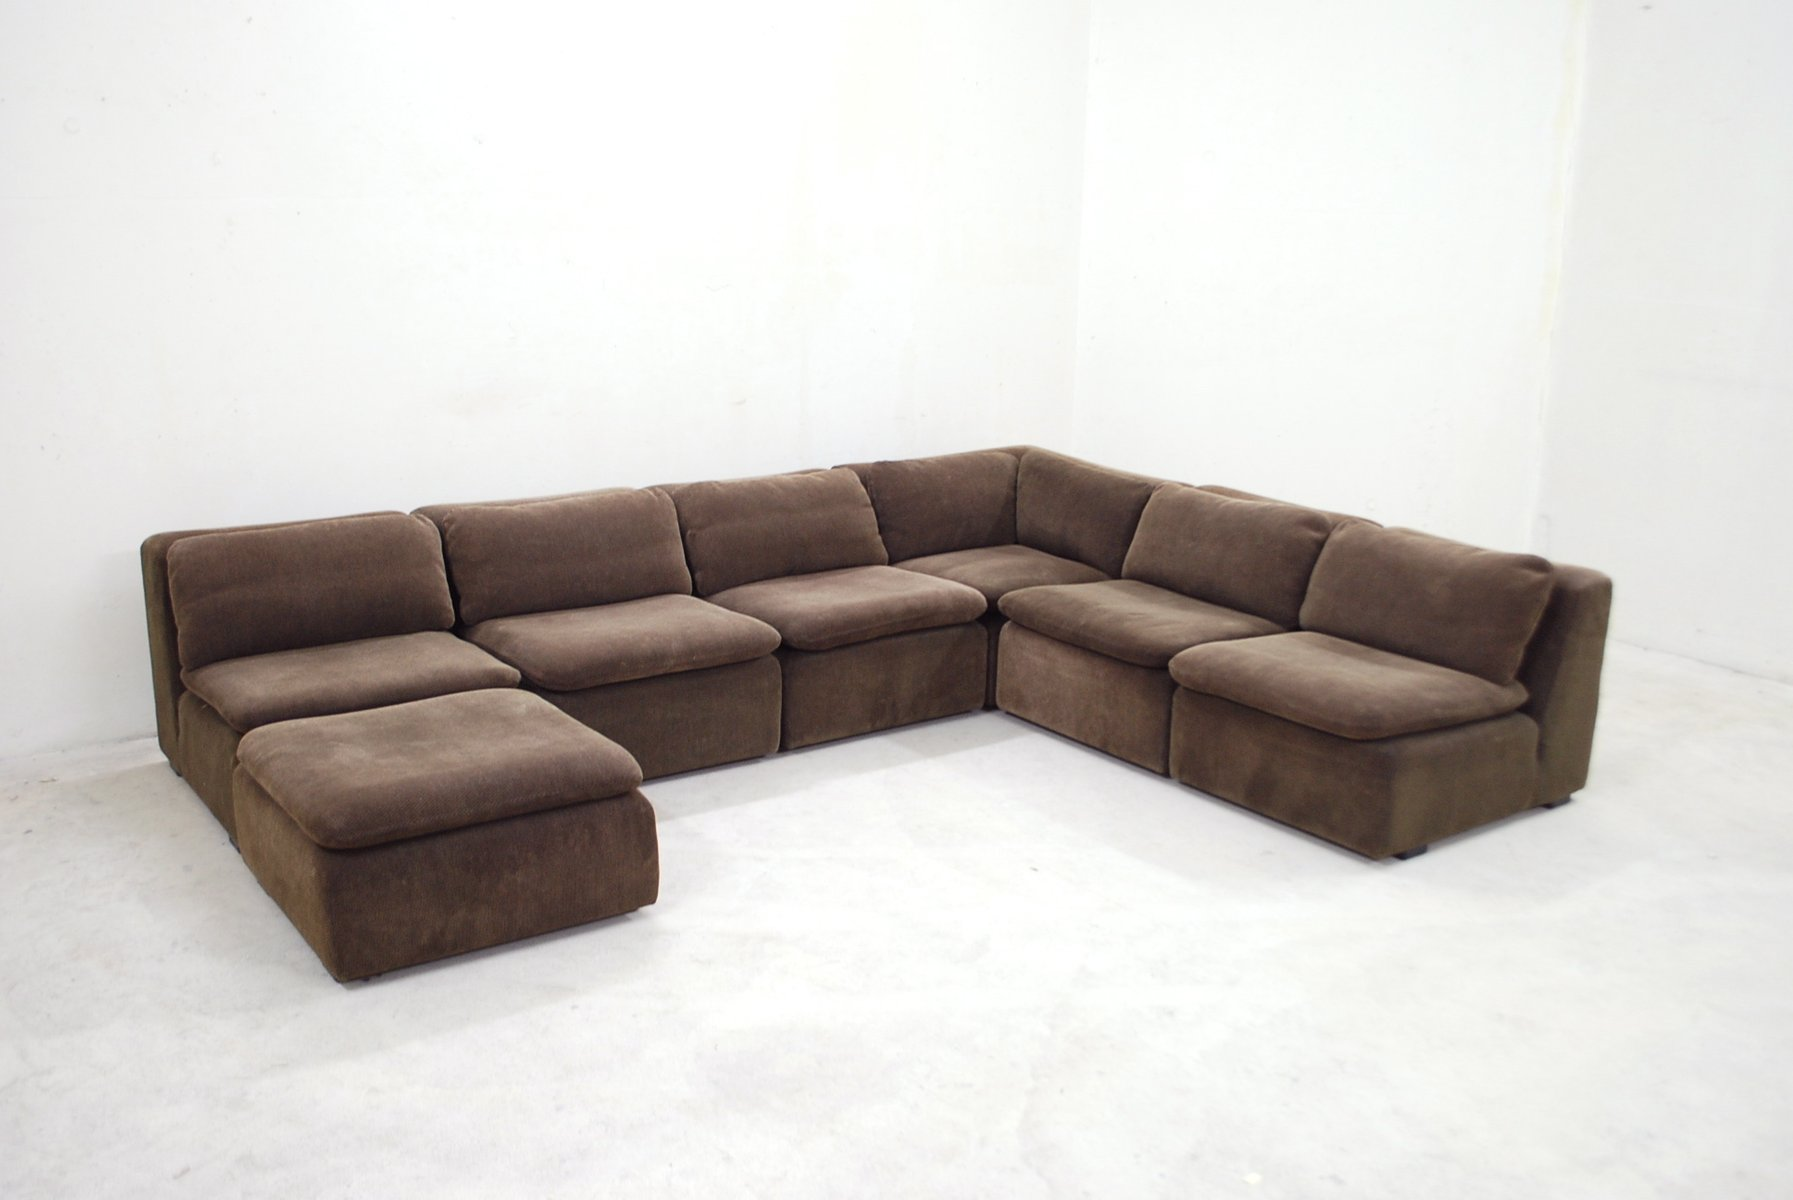 vintage brown modular sofa from cor bei pamono kaufen. Black Bedroom Furniture Sets. Home Design Ideas